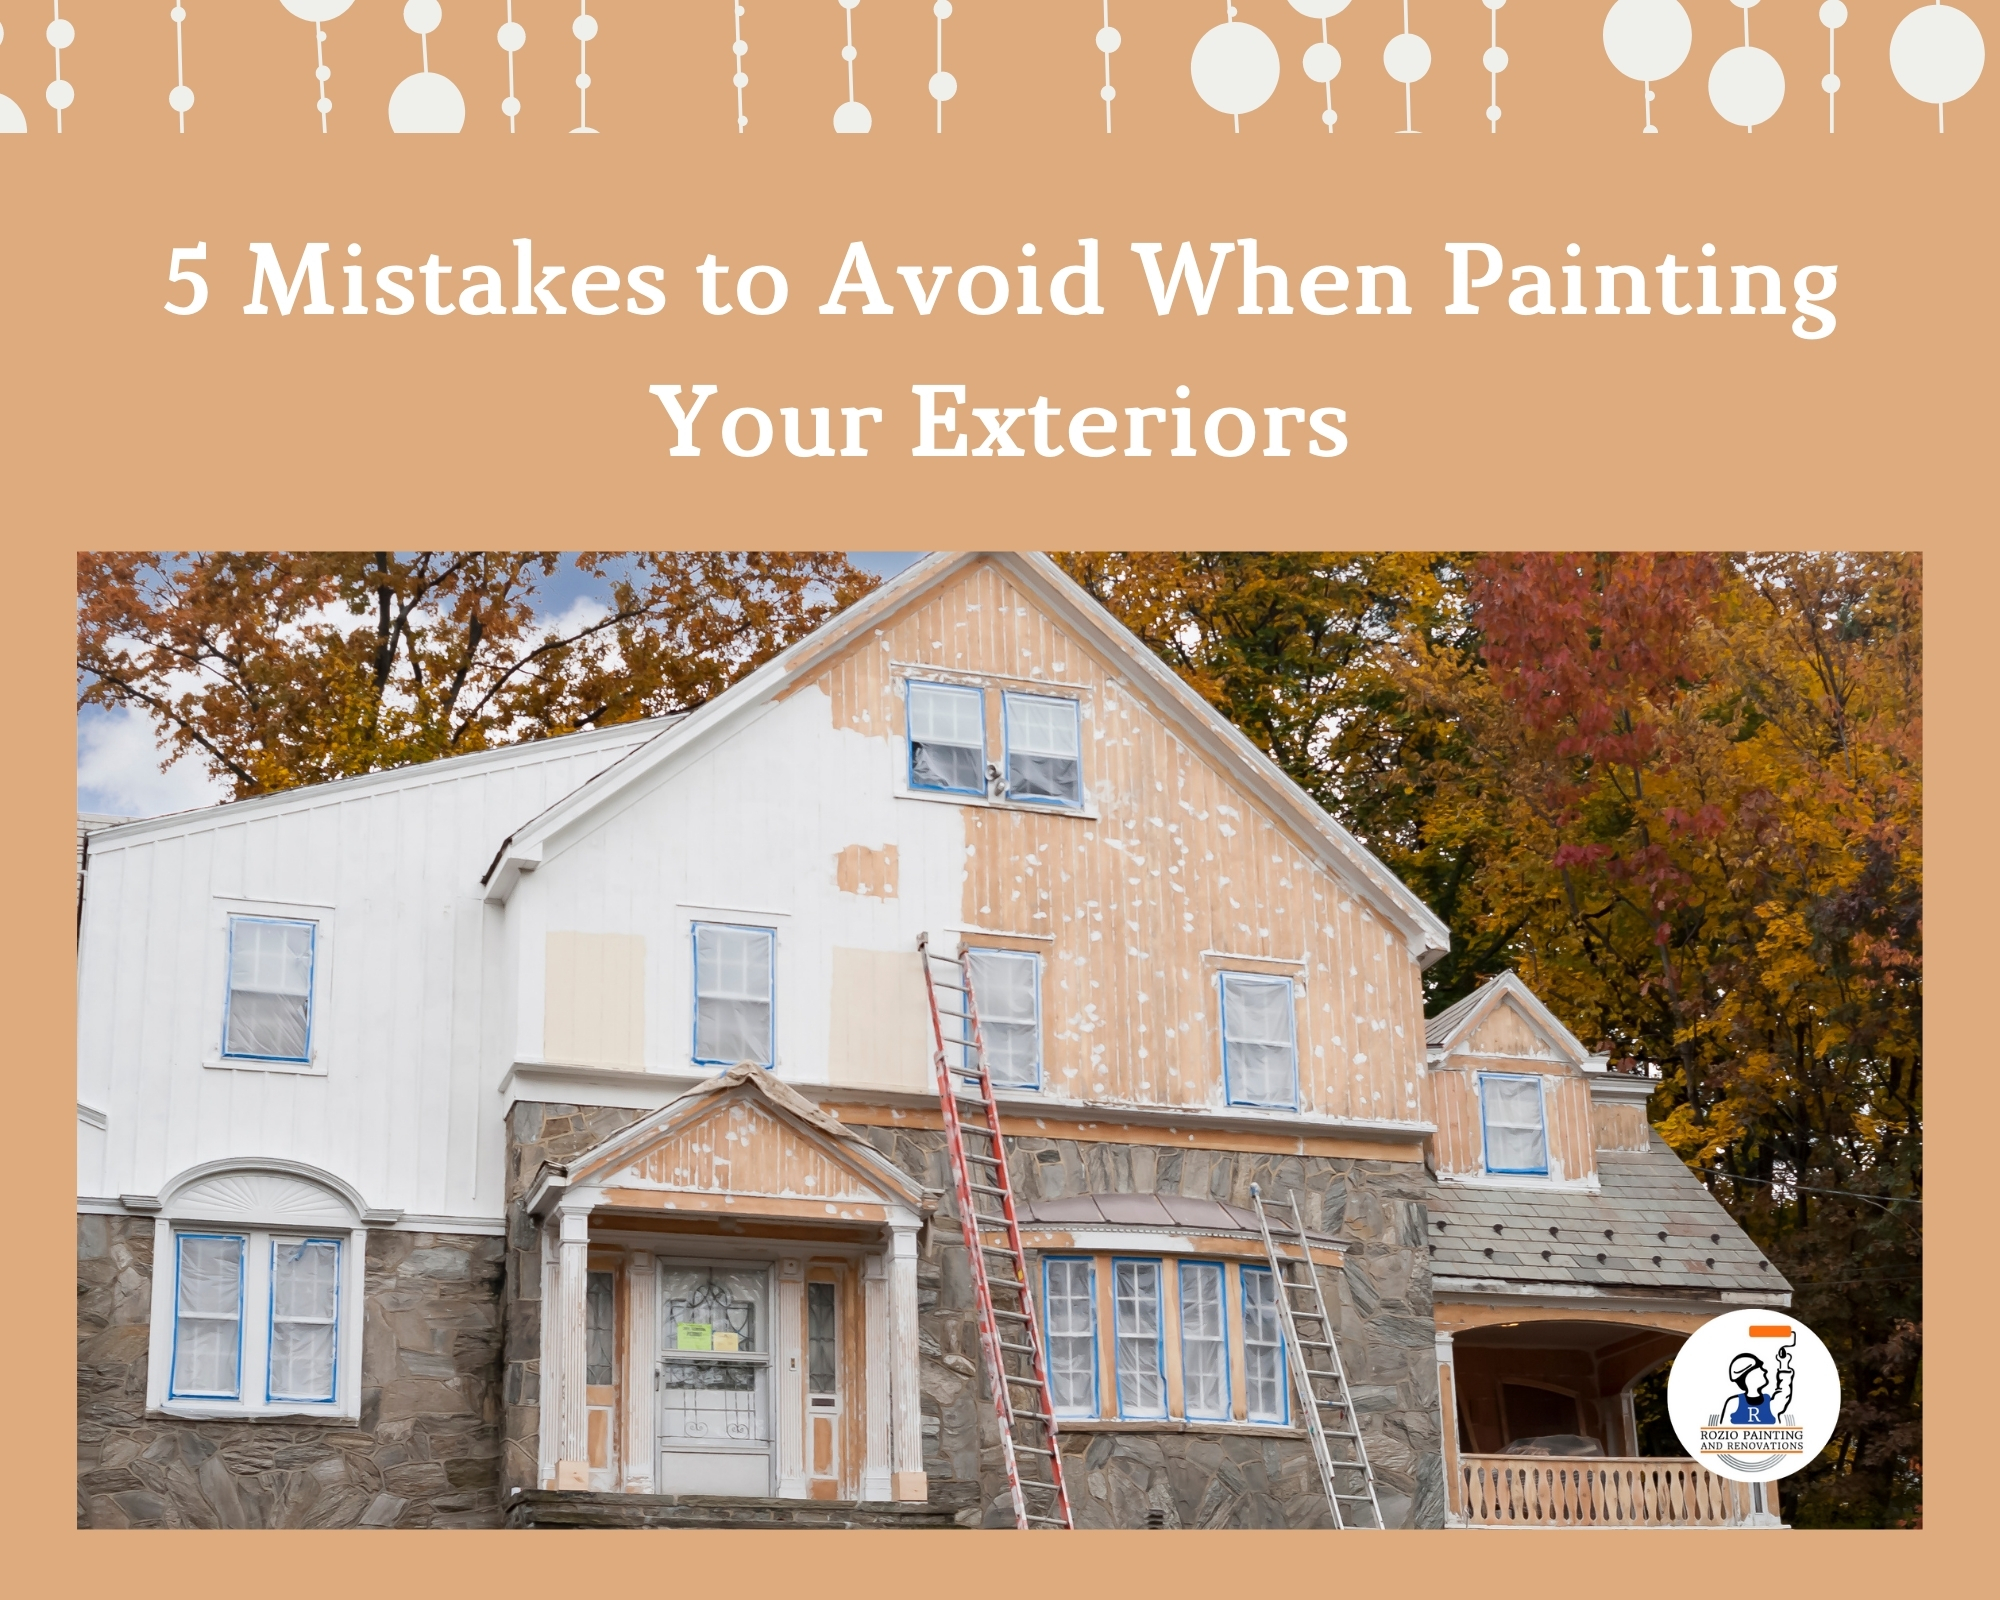 5 Mistakes to Avoid When Painting Your Exteriors